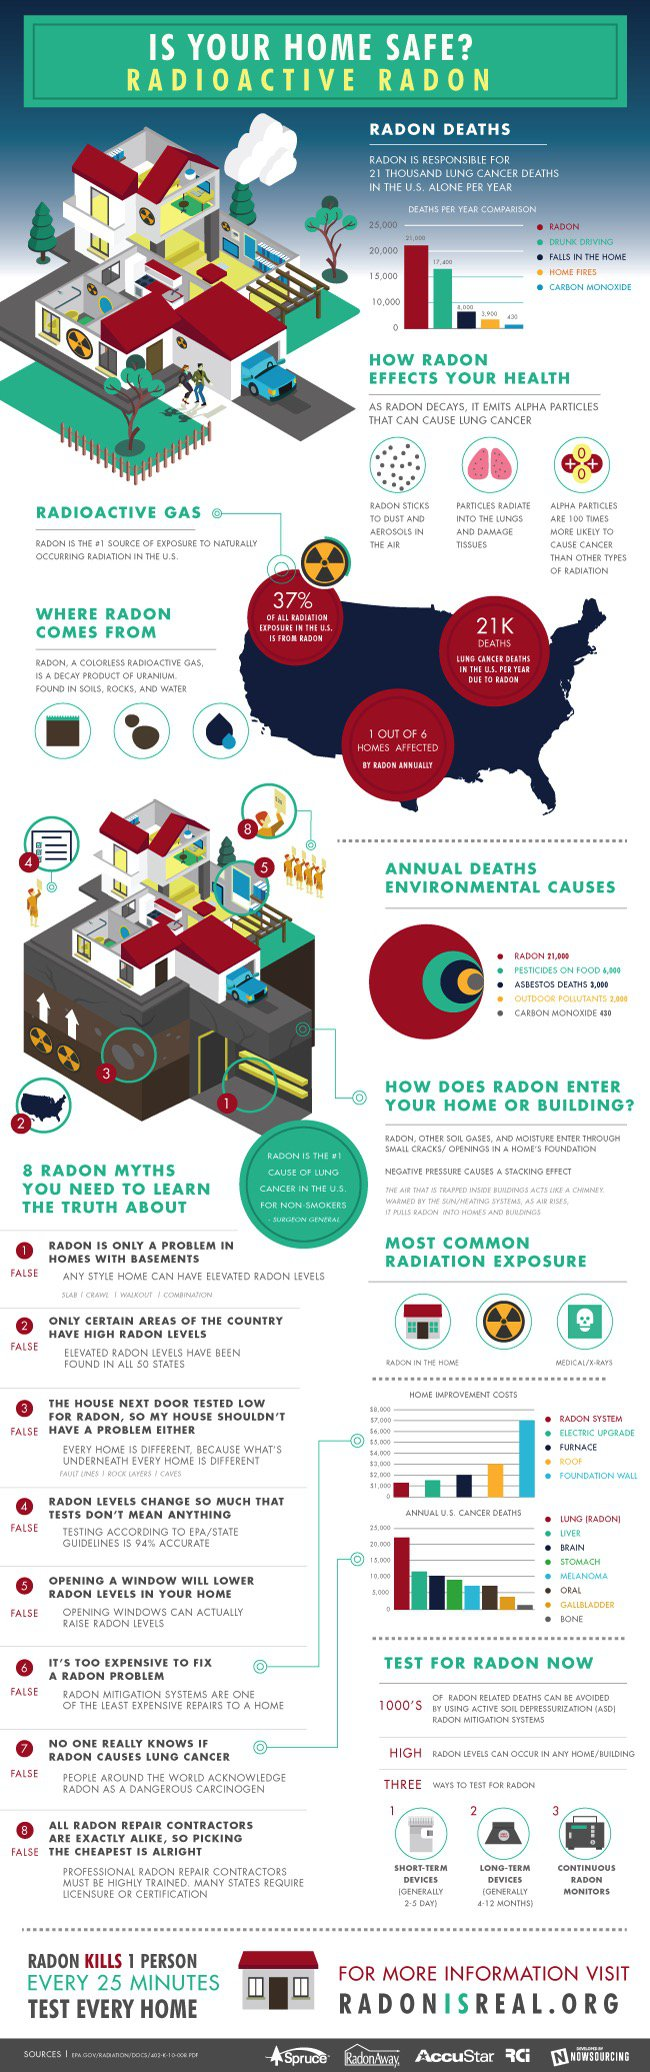 It's Radon Awareness month and a great time to check your house. : TreeHugger -  http://bit.ly/1IuLTpM